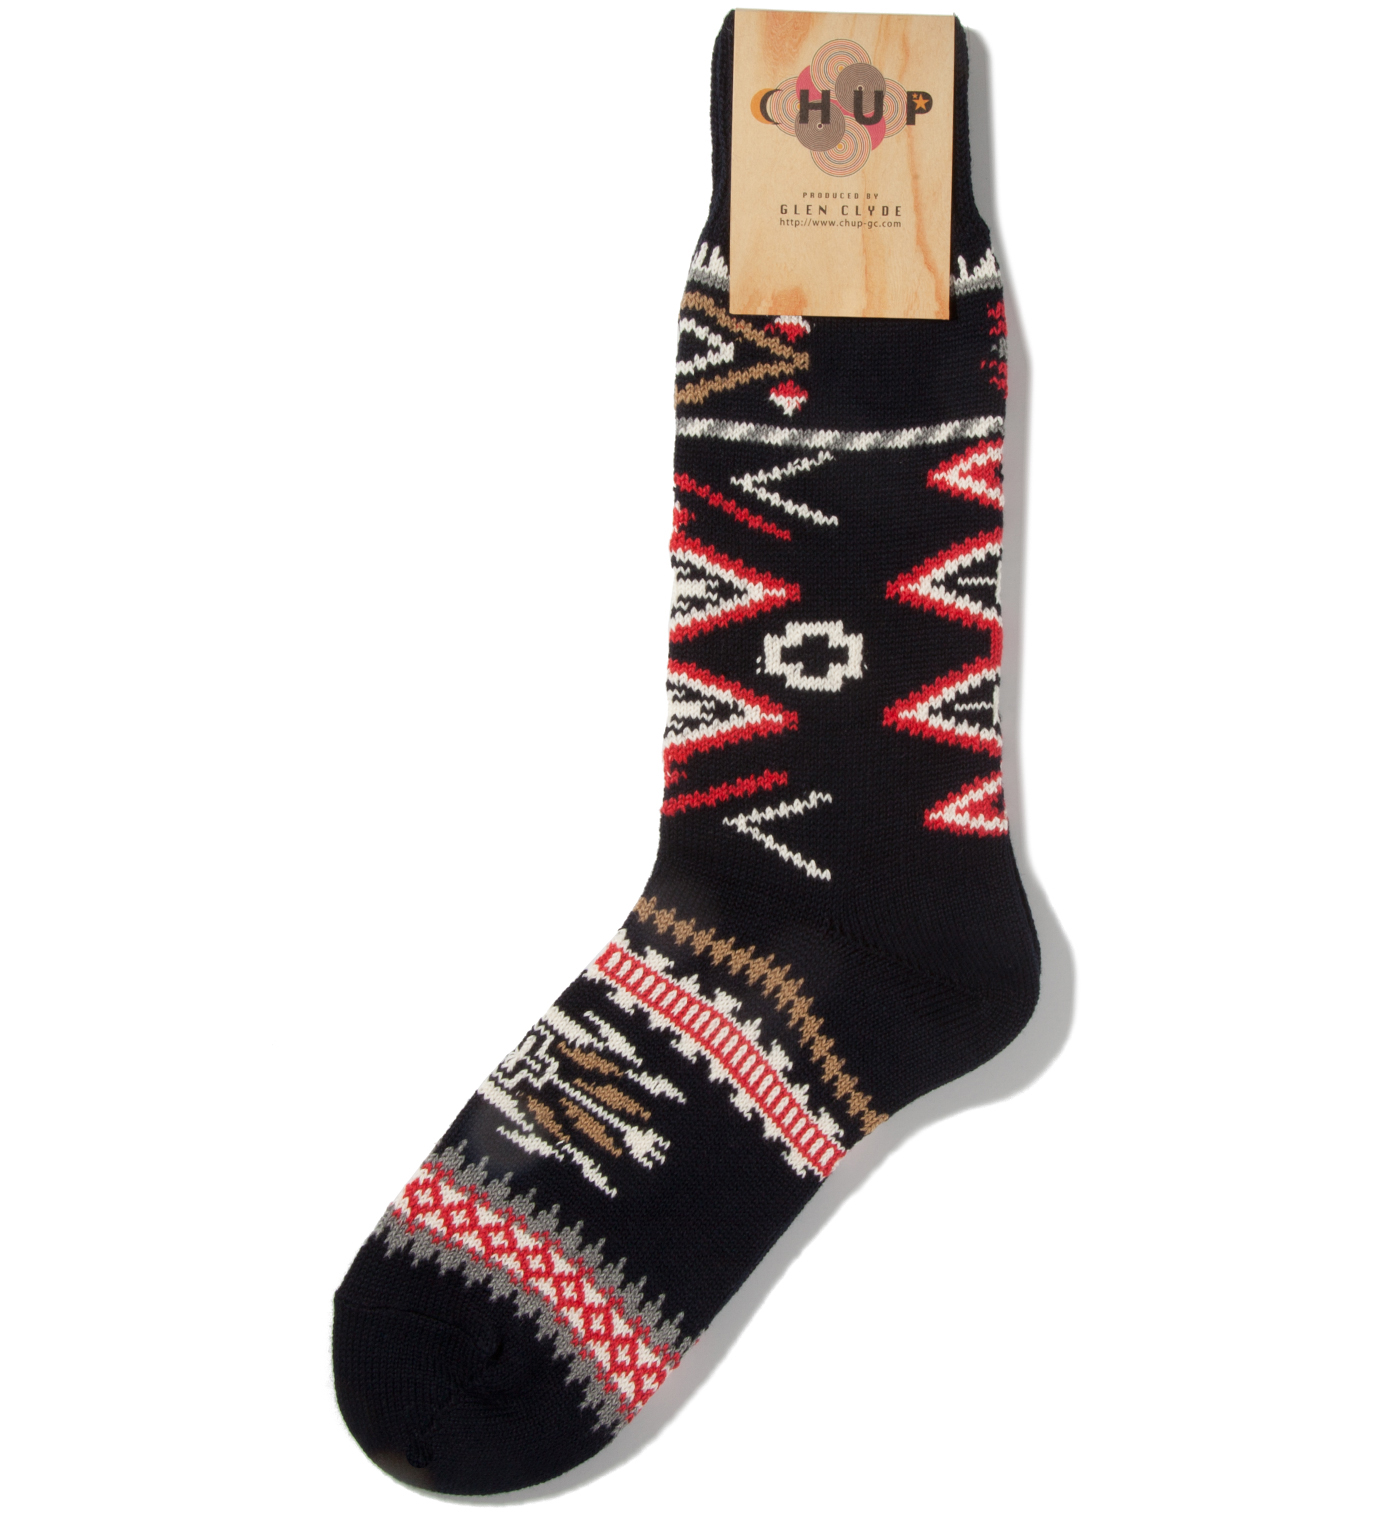 CHUP Navy Ganado Socks